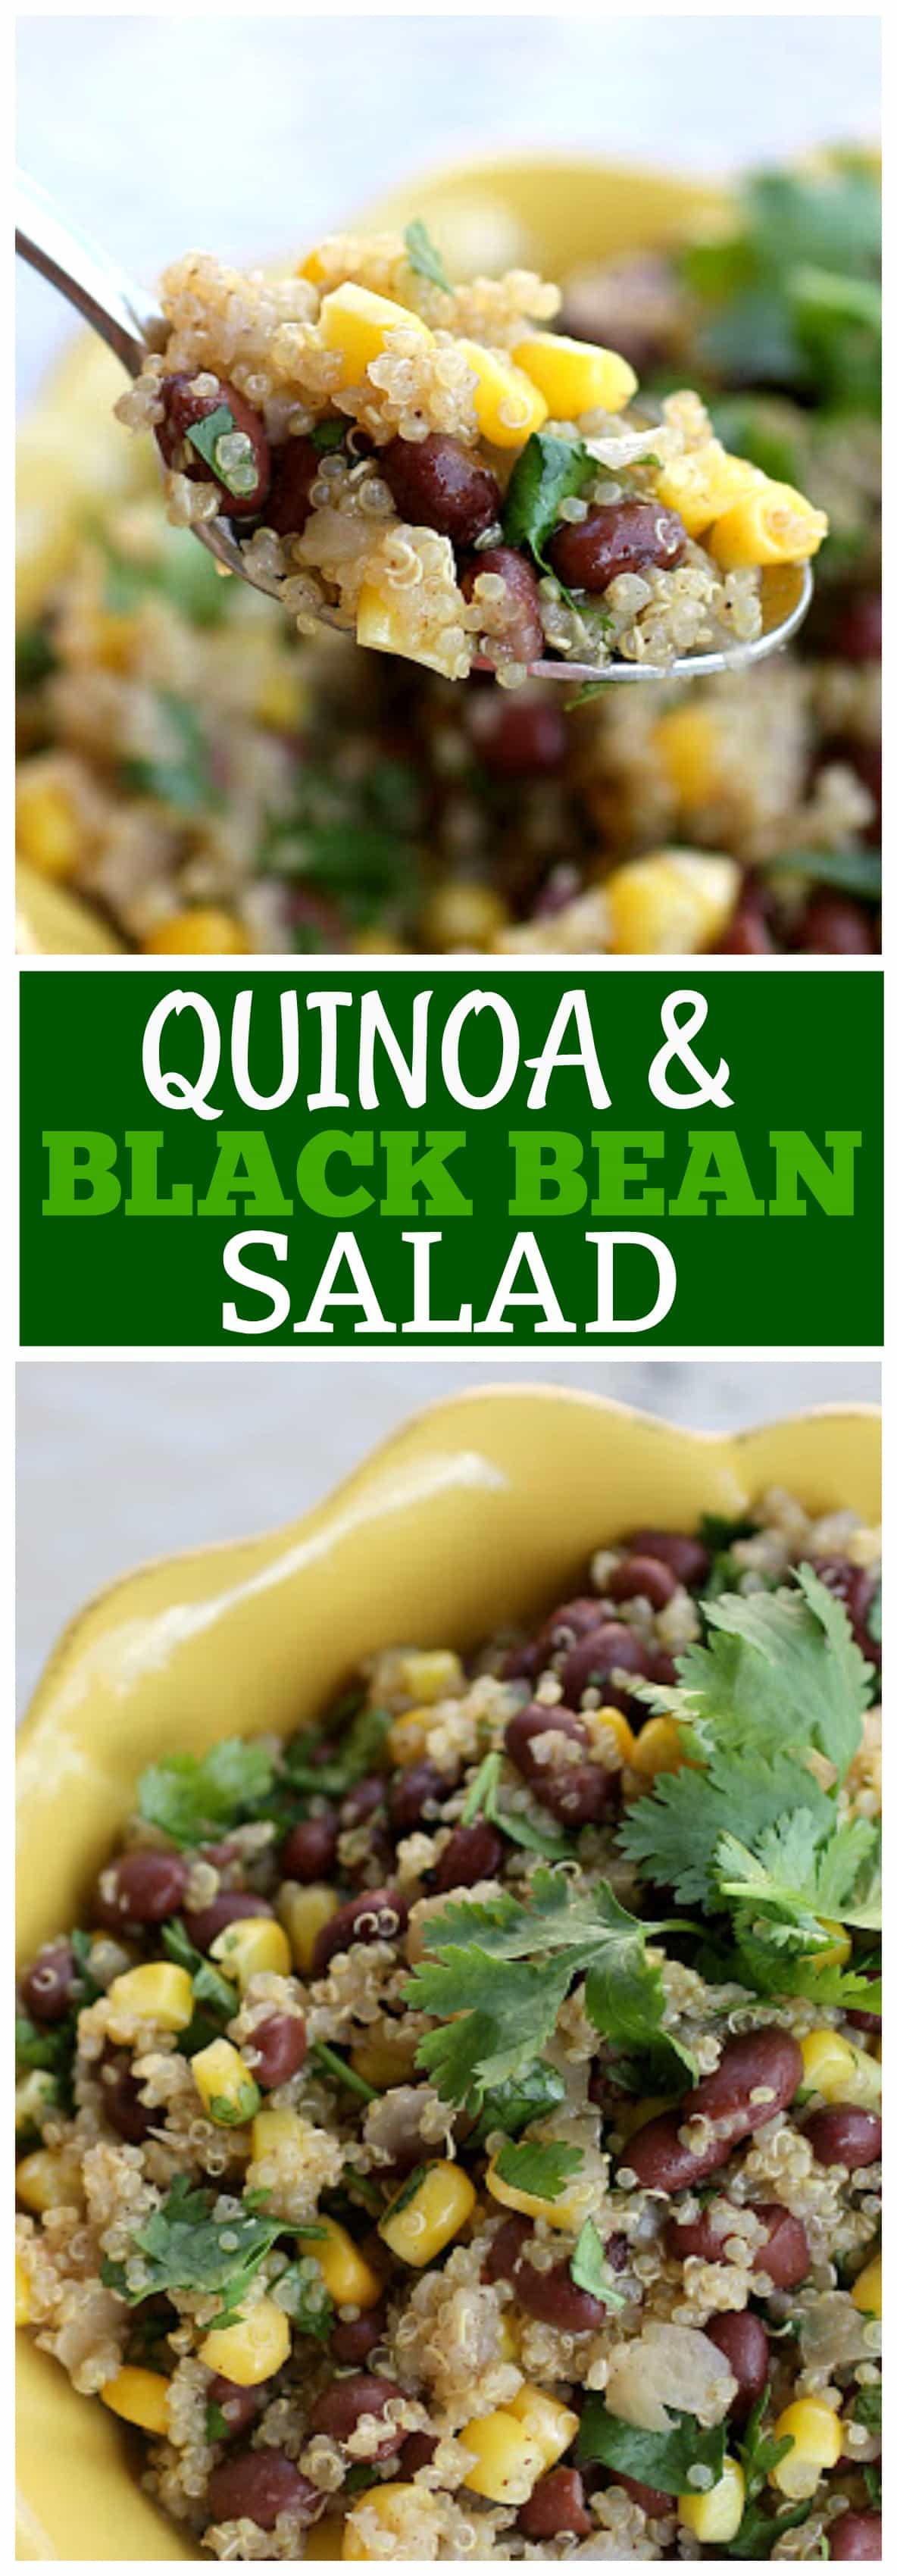 Quinoa With Black Bean Salad The Girl Who Ate Everything